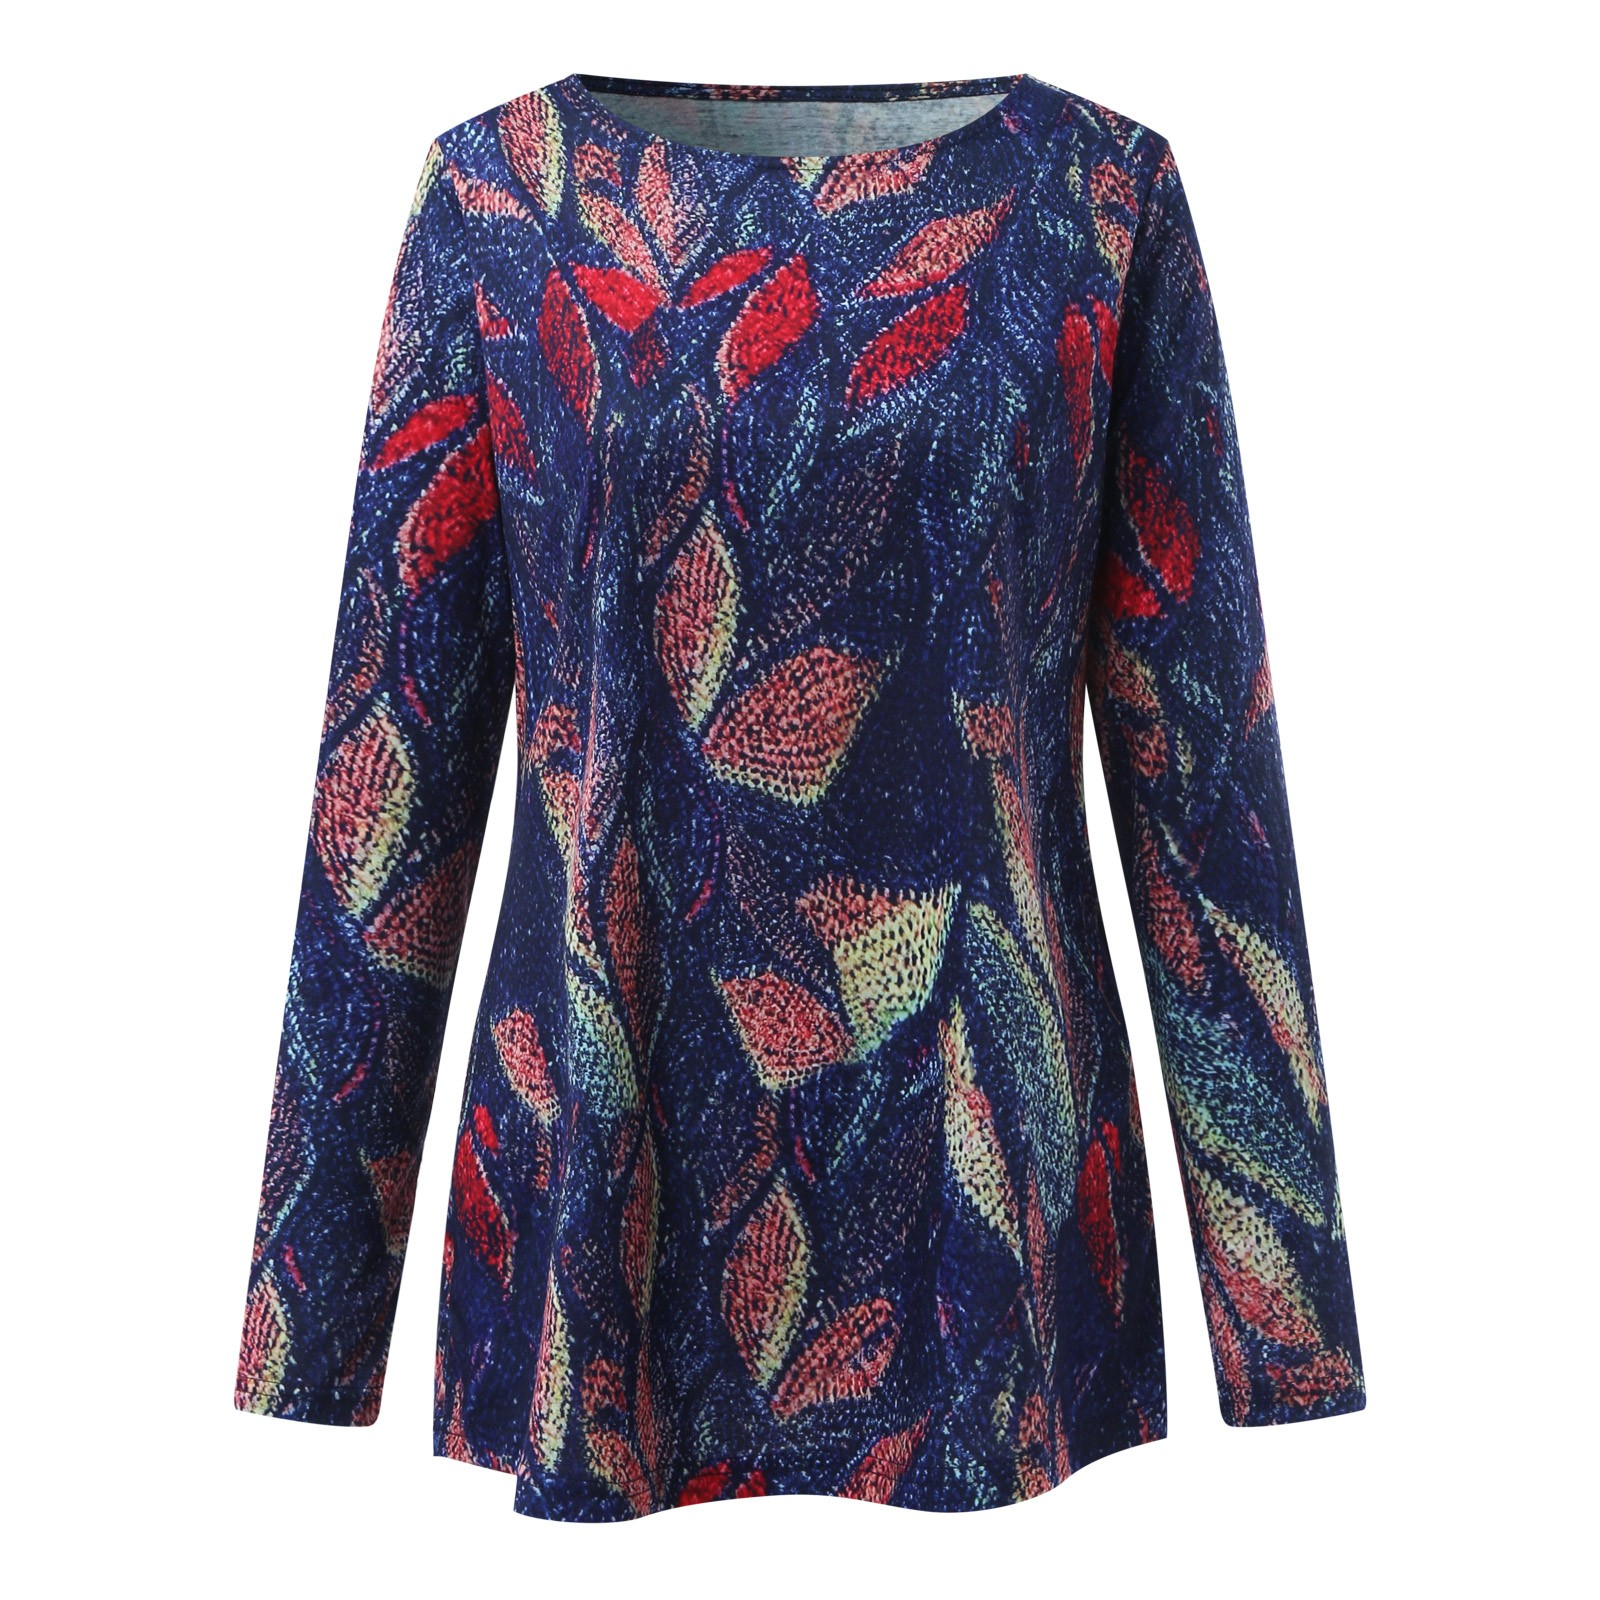 4# Women's Harajuku Blouses Retro Leaf Print Loose Casual Long Sleeve Shirts Pullover O neck Top Shirt Cotton And Linen Top